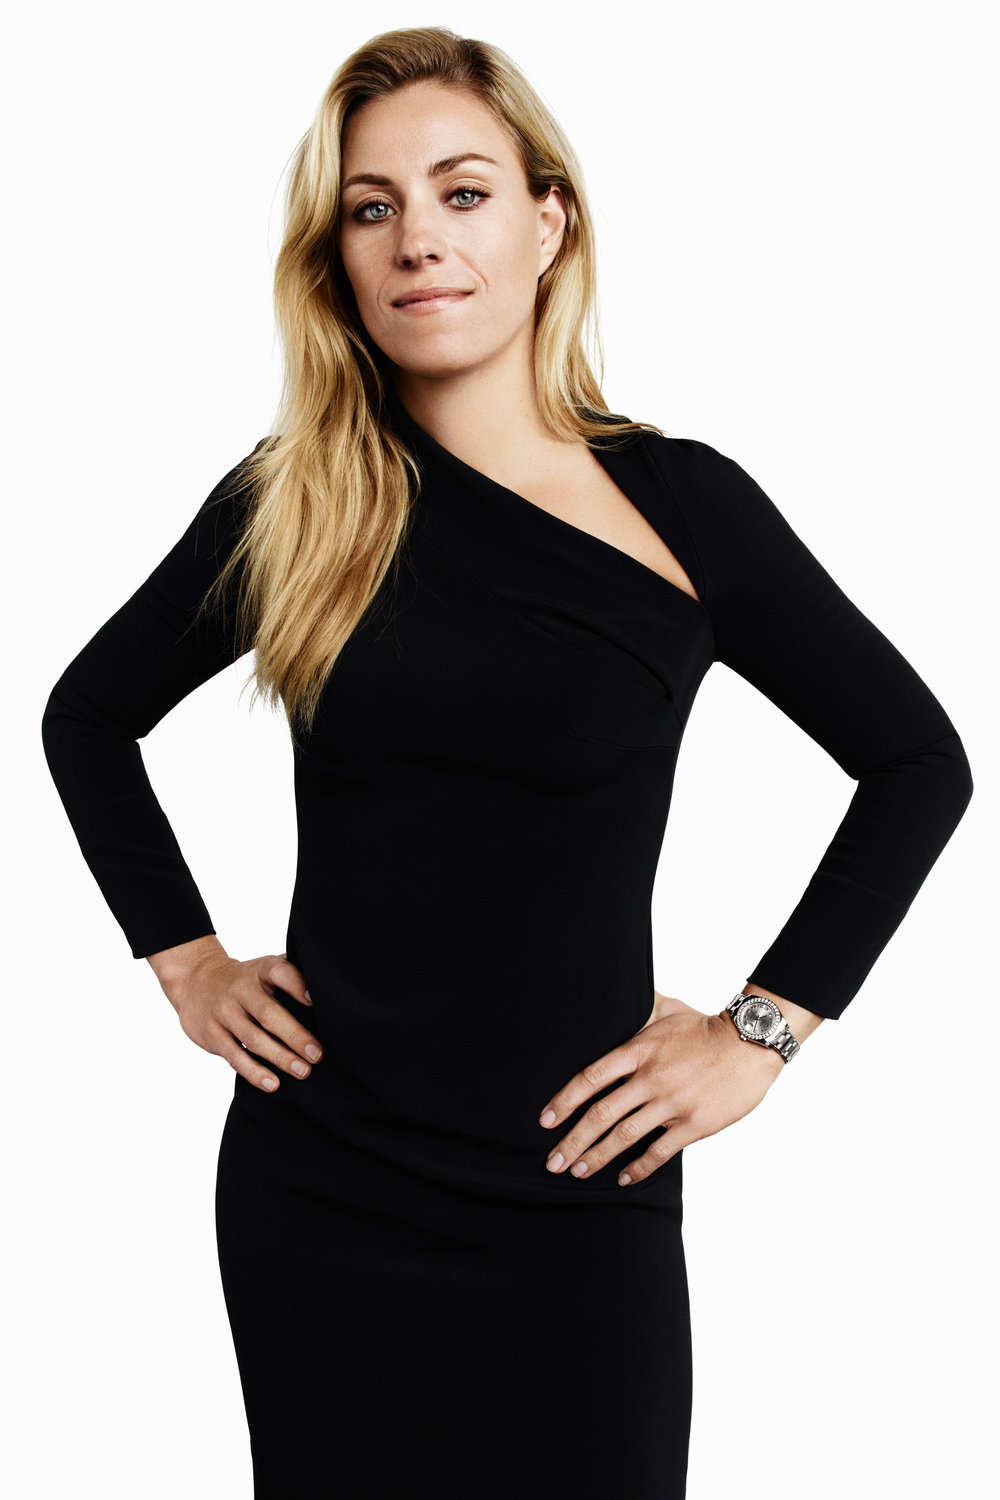 Copy of Angelique Kerber for Rolex x ELLE